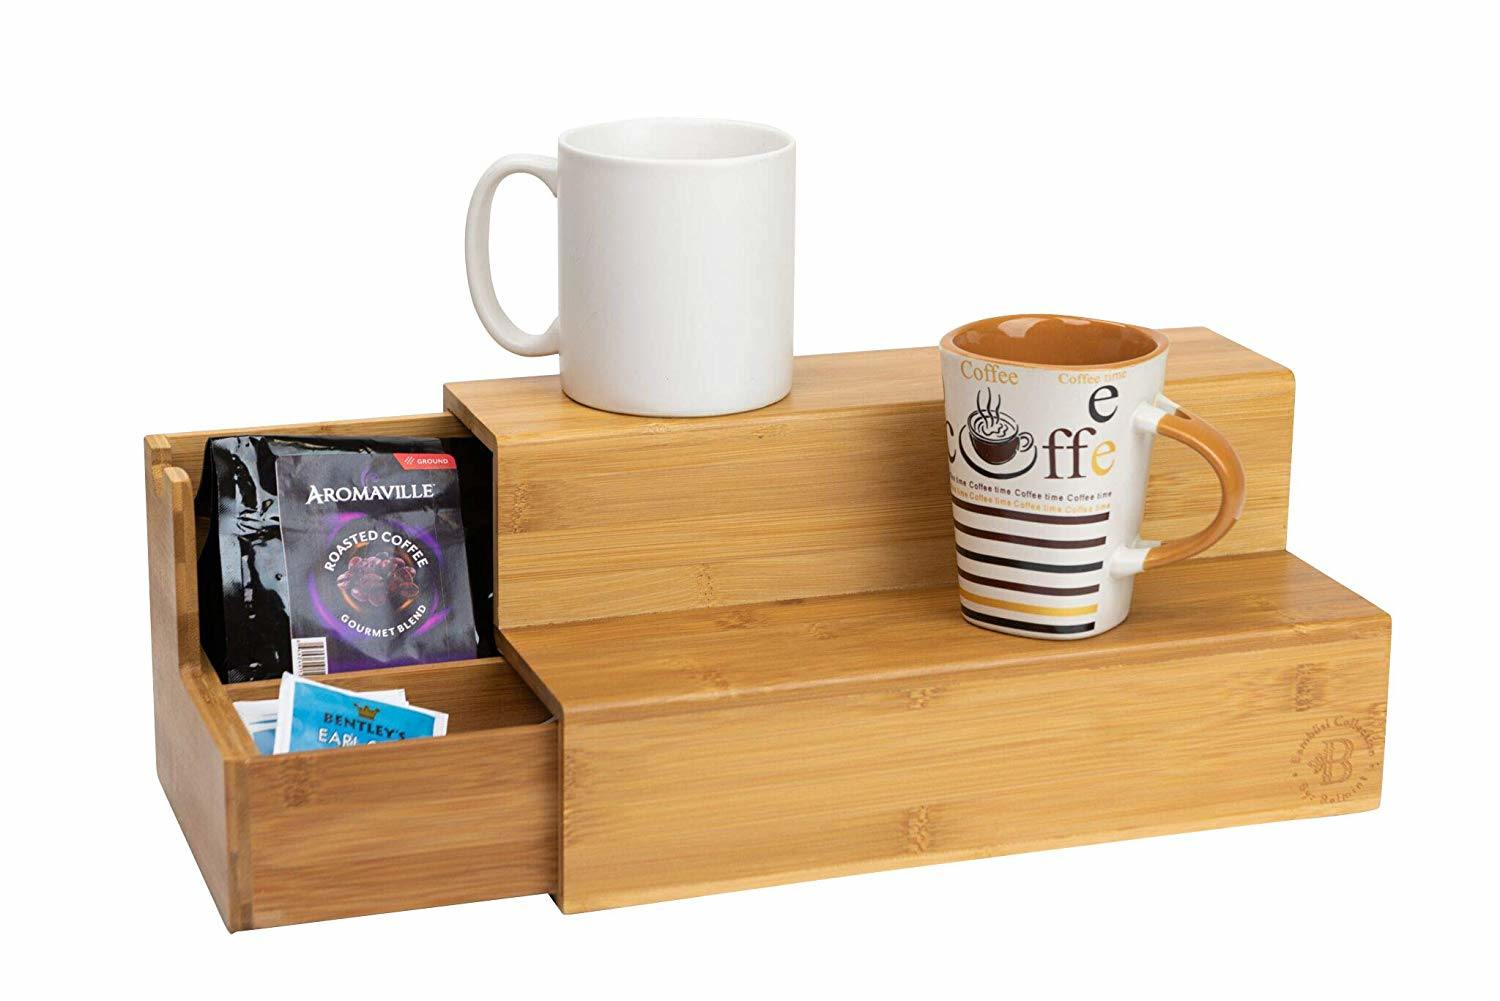 China Bamboo Coffee Organizer With Side Drawer For K Cup Pods And Tea Bags Sugar More Elegant Breakfast Station Kitchen Office